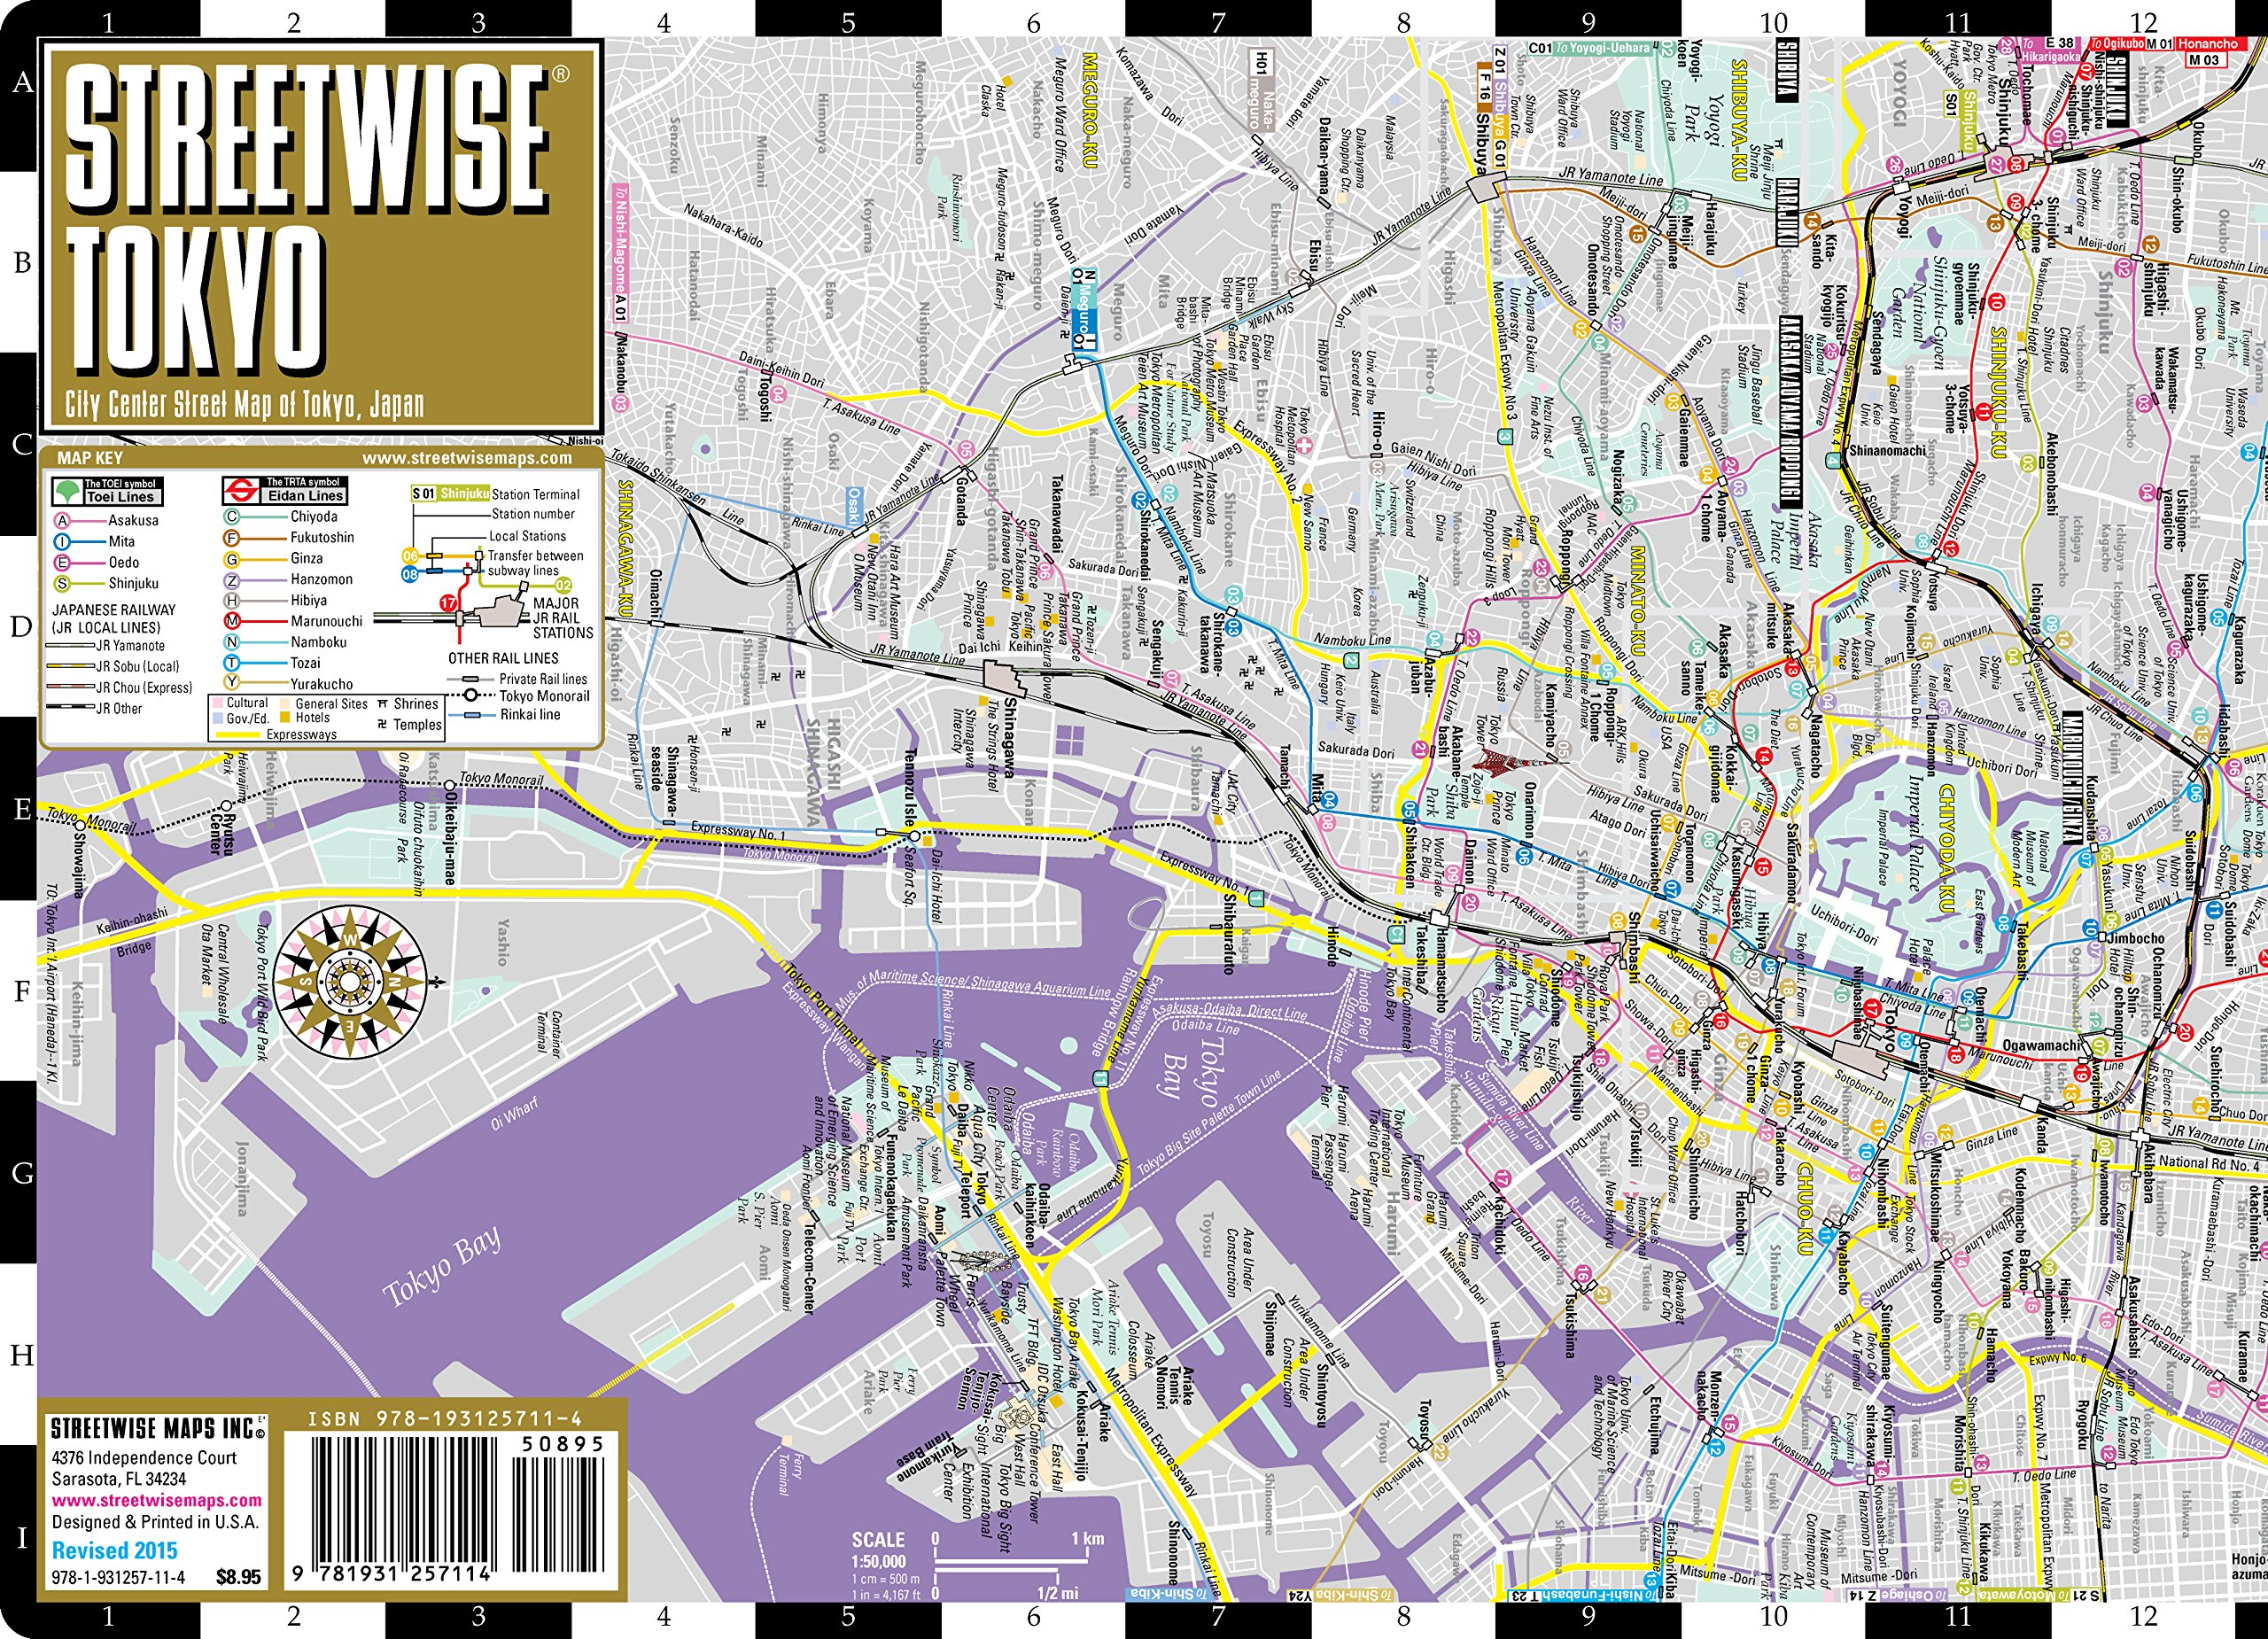 Streetwise Tokyo Map Laminated City Center Street Map of Tokyo – Tokyo Tourist Map